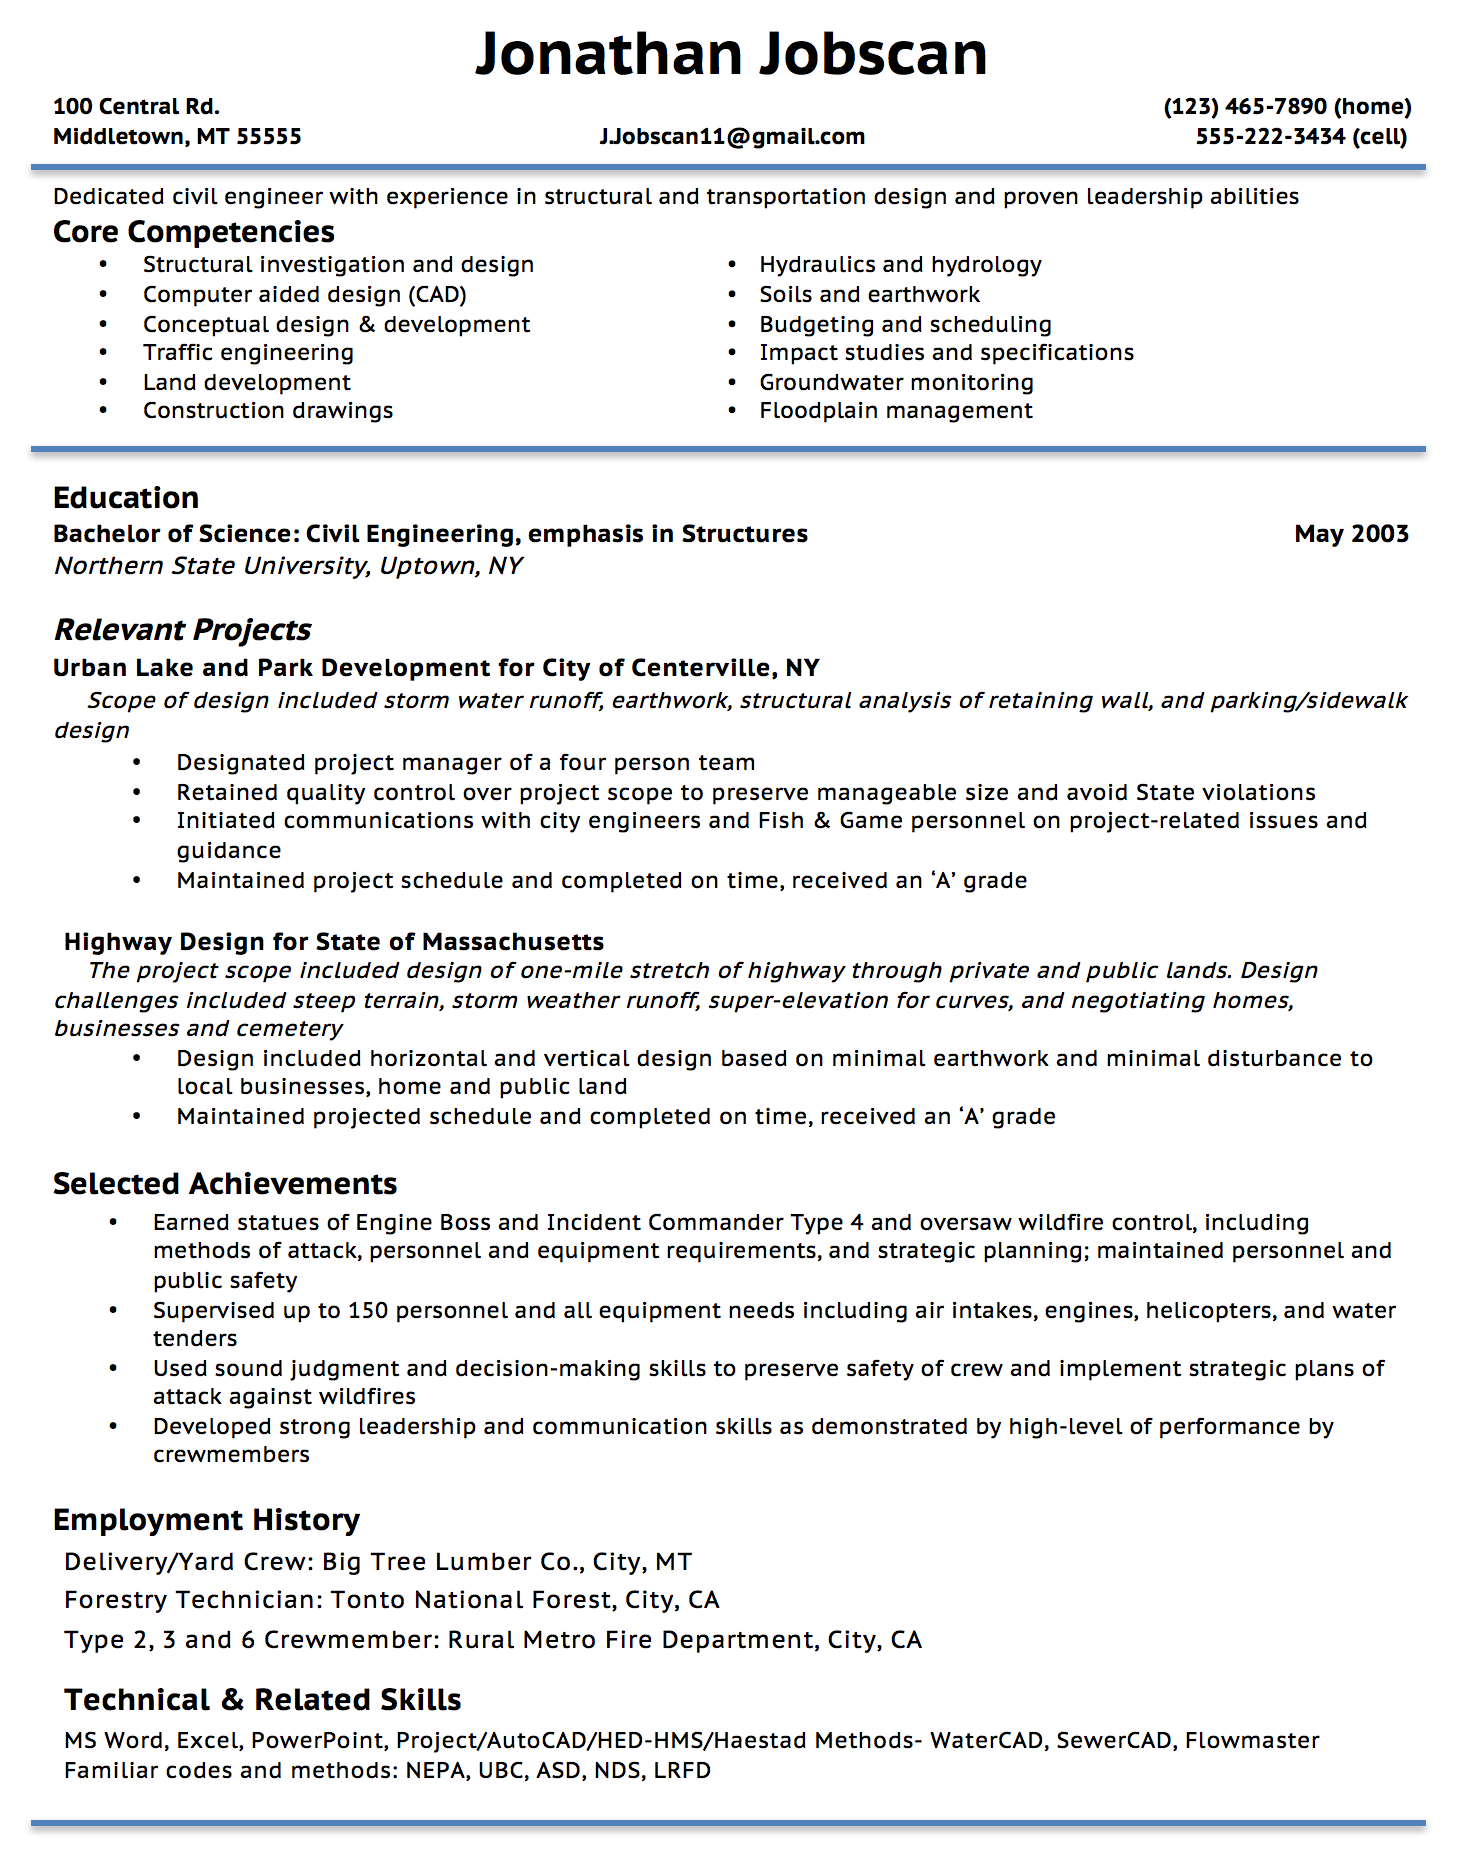 Opposenewapstandardsus  Winsome Resume Writing Guide  Jobscan With Gorgeous Example Of A Functional Resume Format With Beauteous Chrome Resume Download Also What Is Cover Letter For Resume In Addition Medical Assistant Skills For Resume And Resume Creative As Well As Resume Builder Template Free Additionally Security Officer Resume Sample From Jobscanco With Opposenewapstandardsus  Gorgeous Resume Writing Guide  Jobscan With Beauteous Example Of A Functional Resume Format And Winsome Chrome Resume Download Also What Is Cover Letter For Resume In Addition Medical Assistant Skills For Resume From Jobscanco